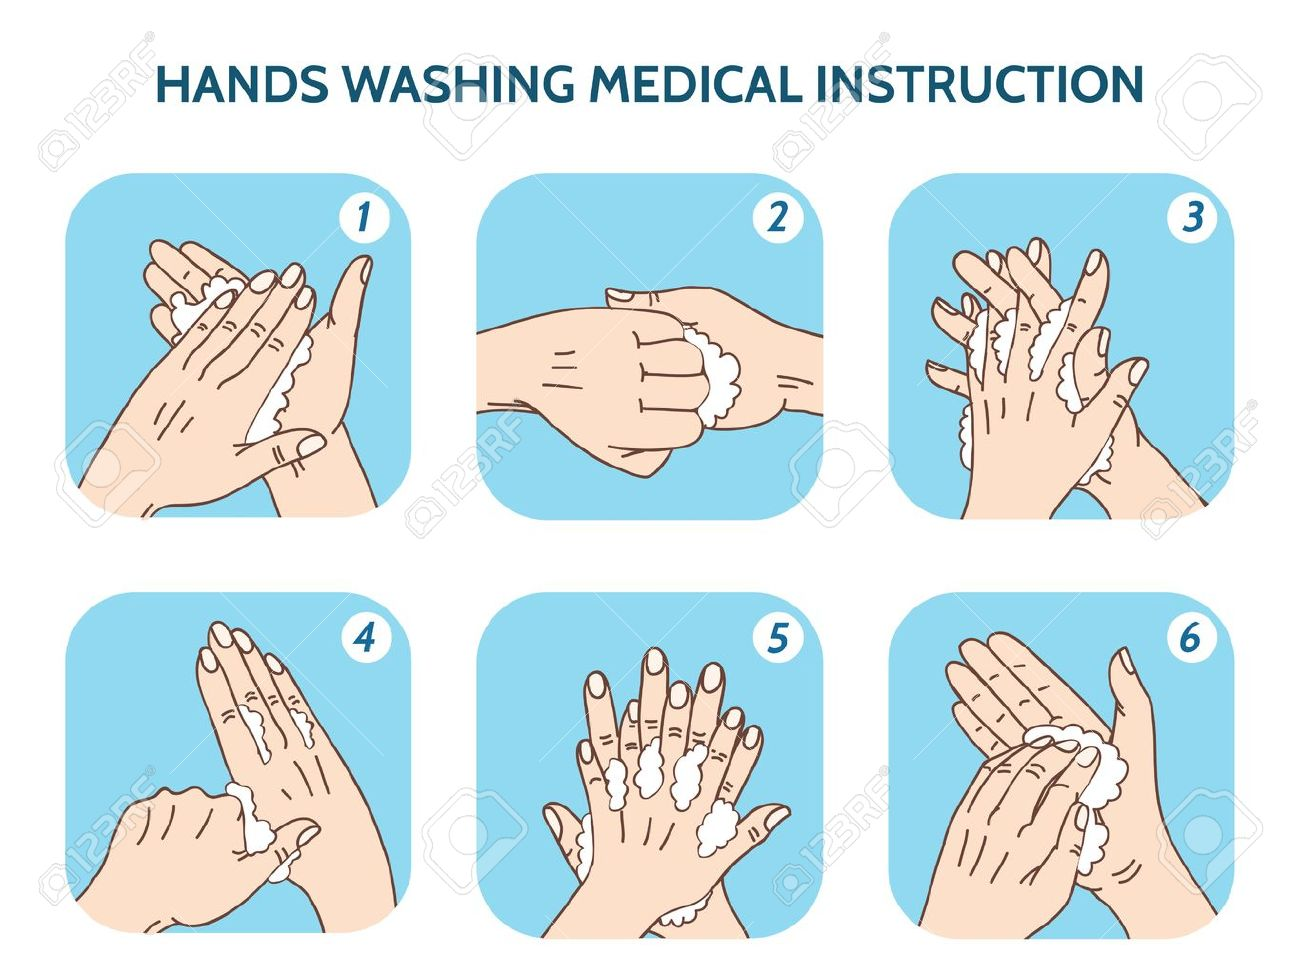 Hands washing medical instruction vector icons set. Water and clean, care hygiene illustration - 46400561